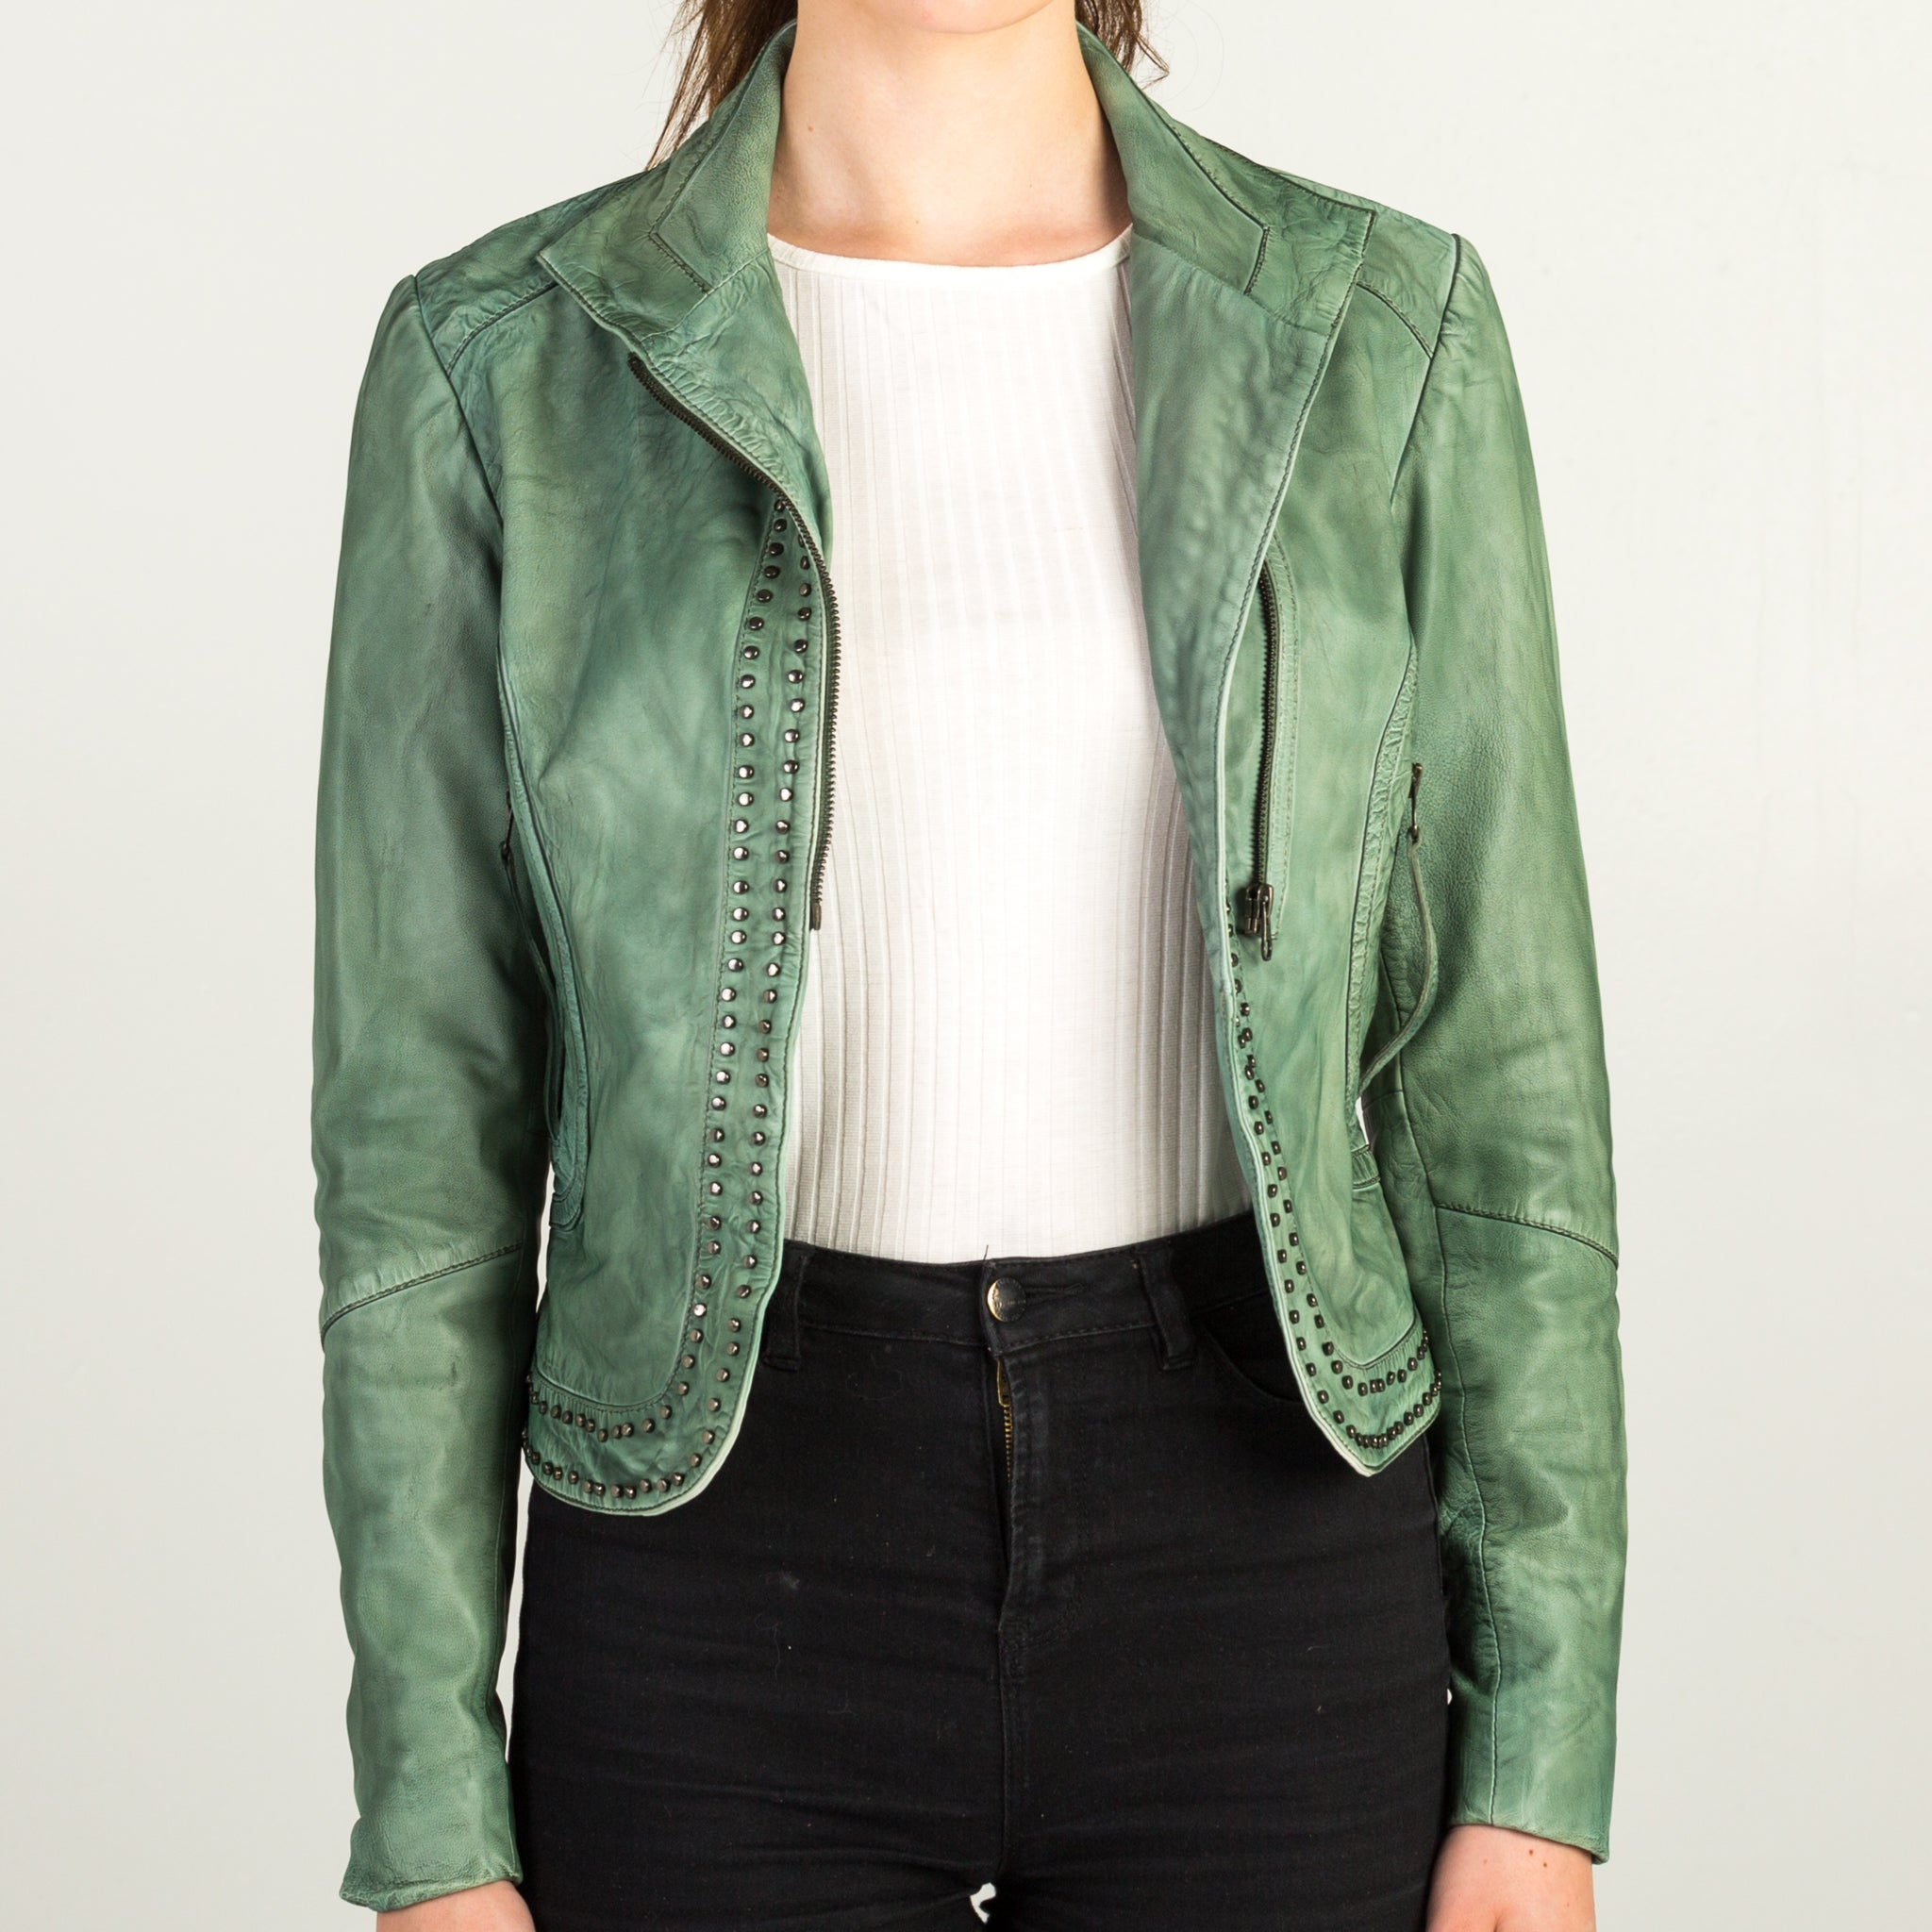 Green Leather Jacket